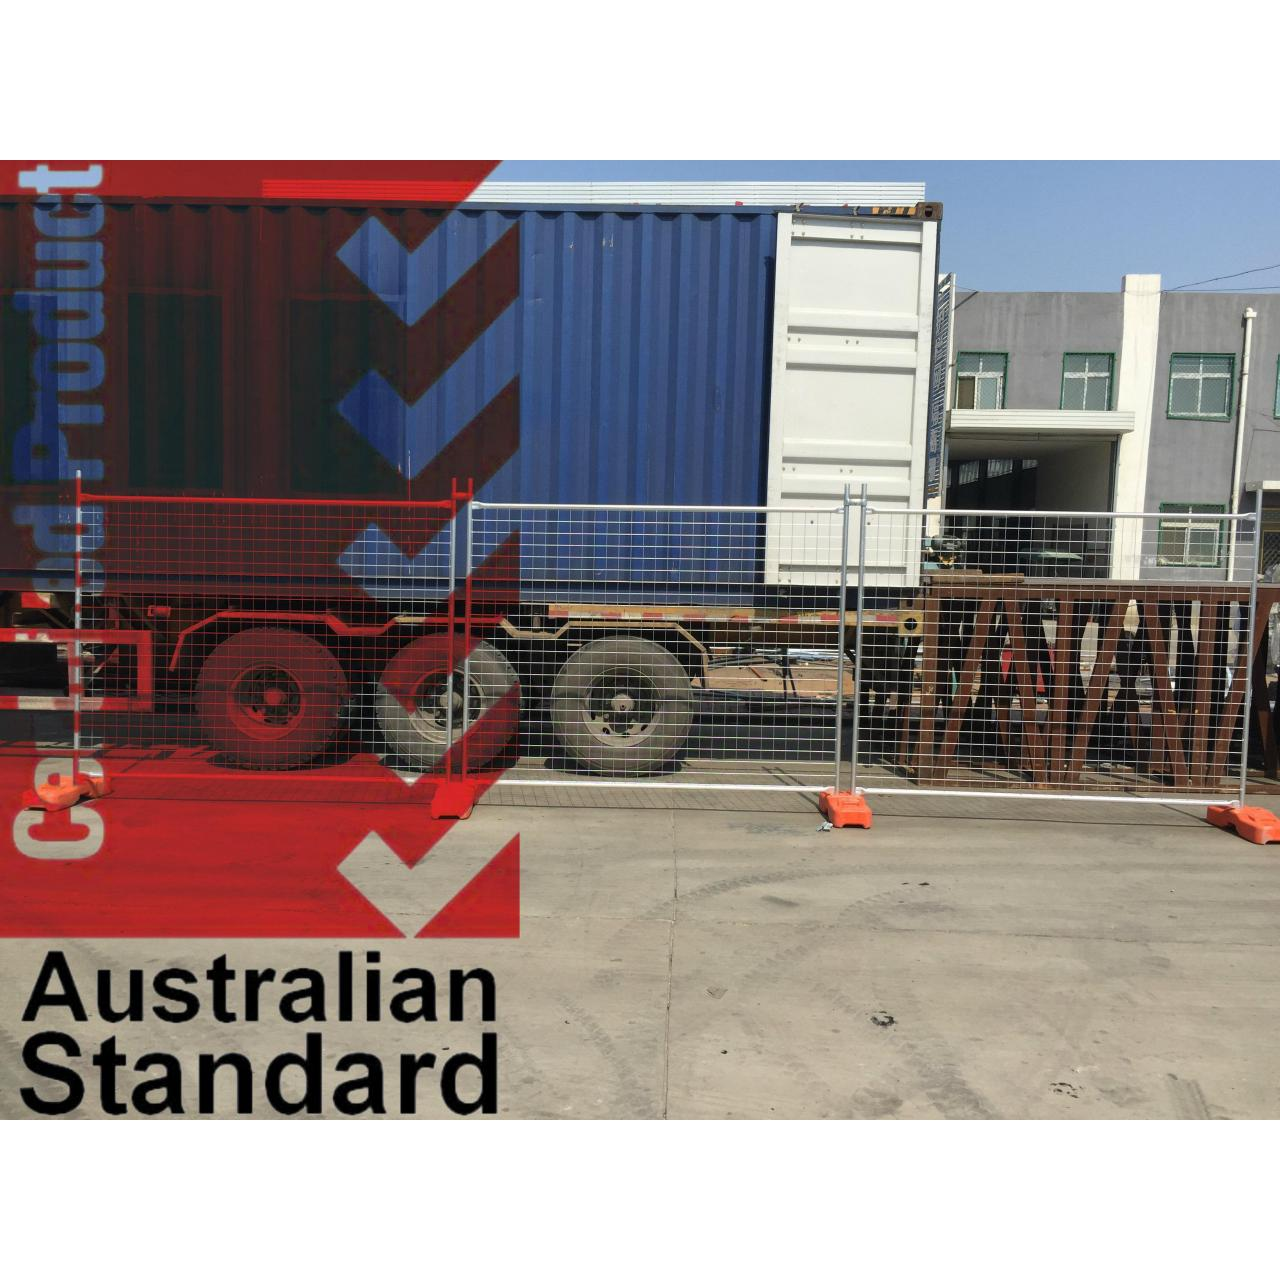 Economic Temporary Fence For Sales Business -17 Microns Zinc Layer HDG before Weld